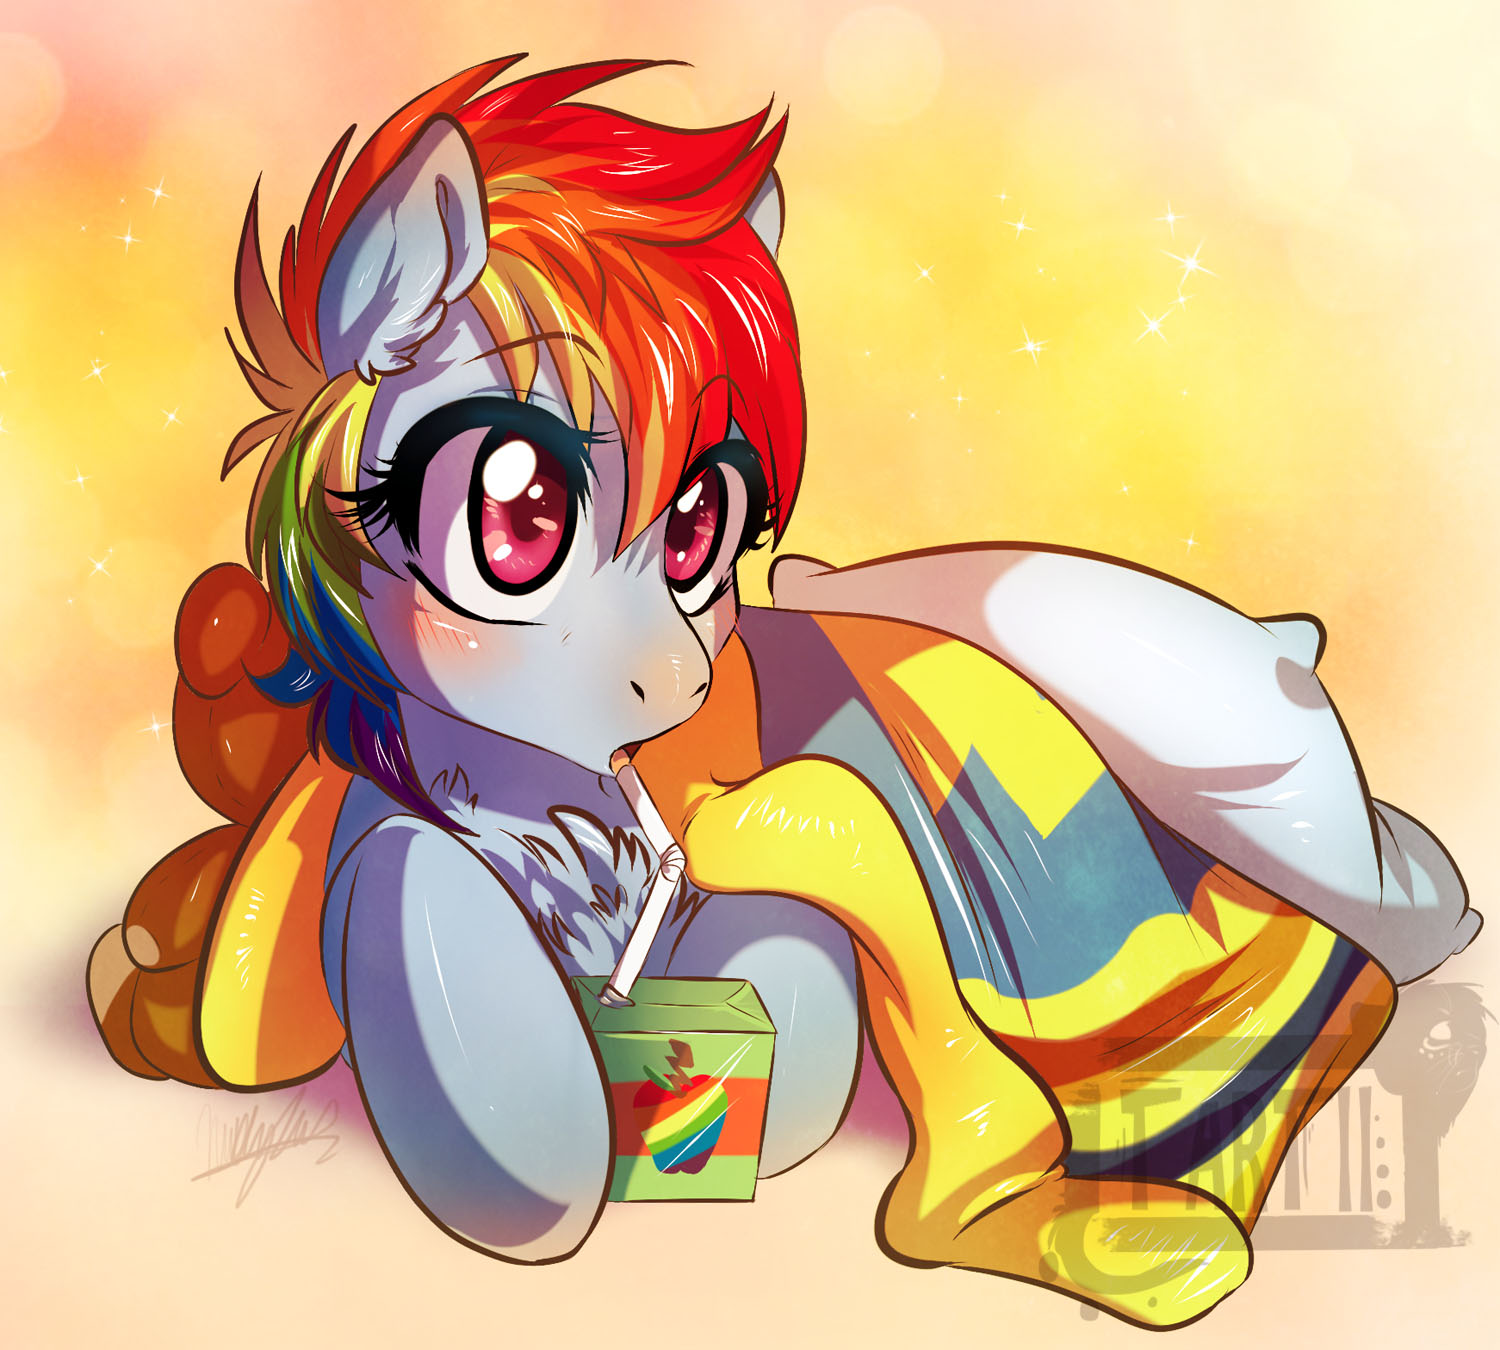 84297__safe_rainbow-dash_filly_artist-ta